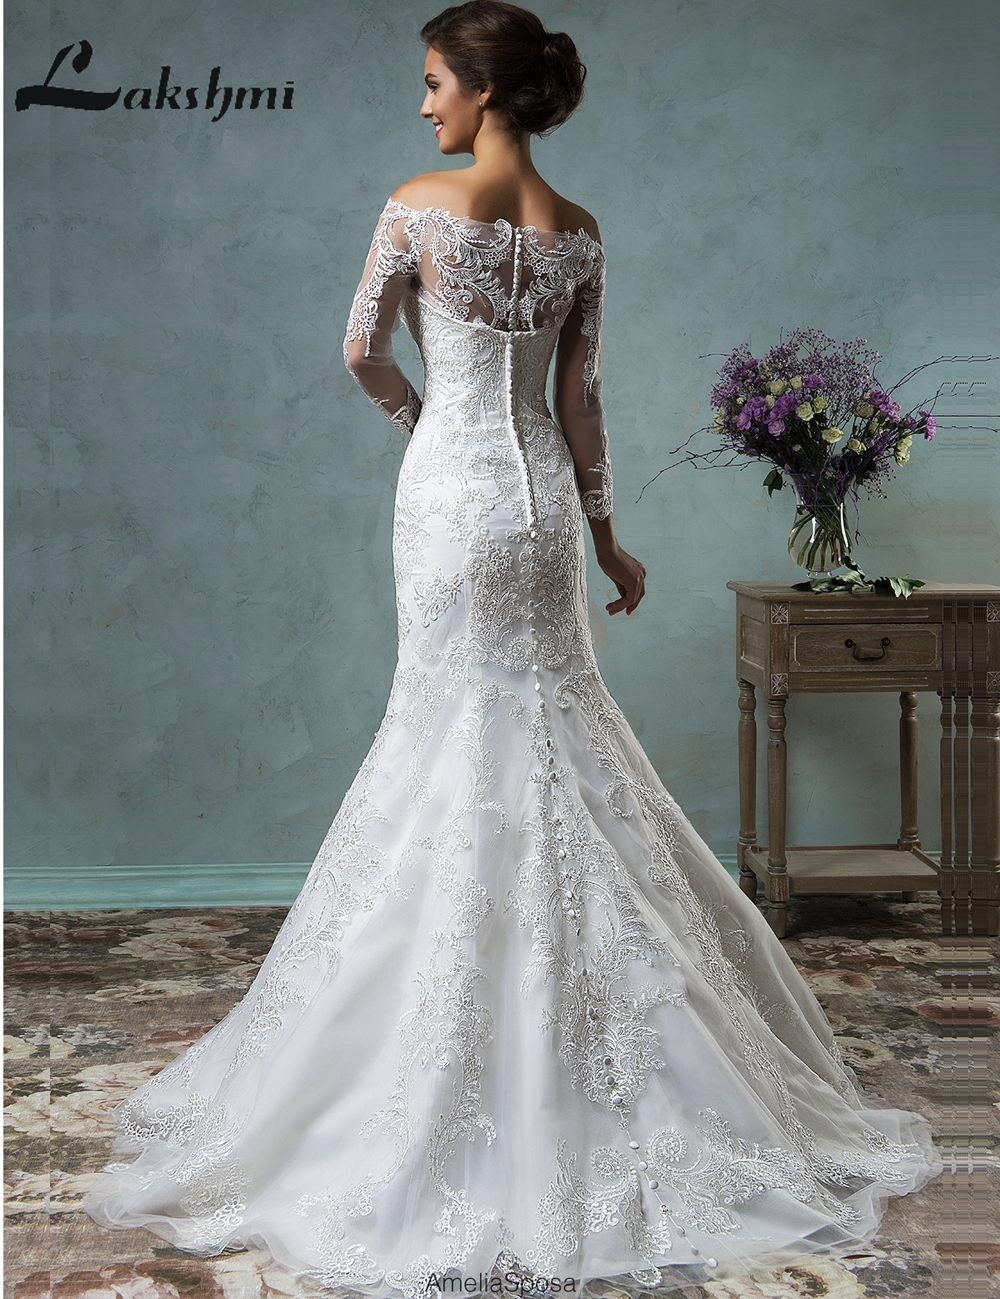 Aliexpress Elegant Long Sleeve Detachable Wedding Dresses Off Shoulder Lace Bridal Gowns With Removable Skirt Vestido De Noiva From Reliable